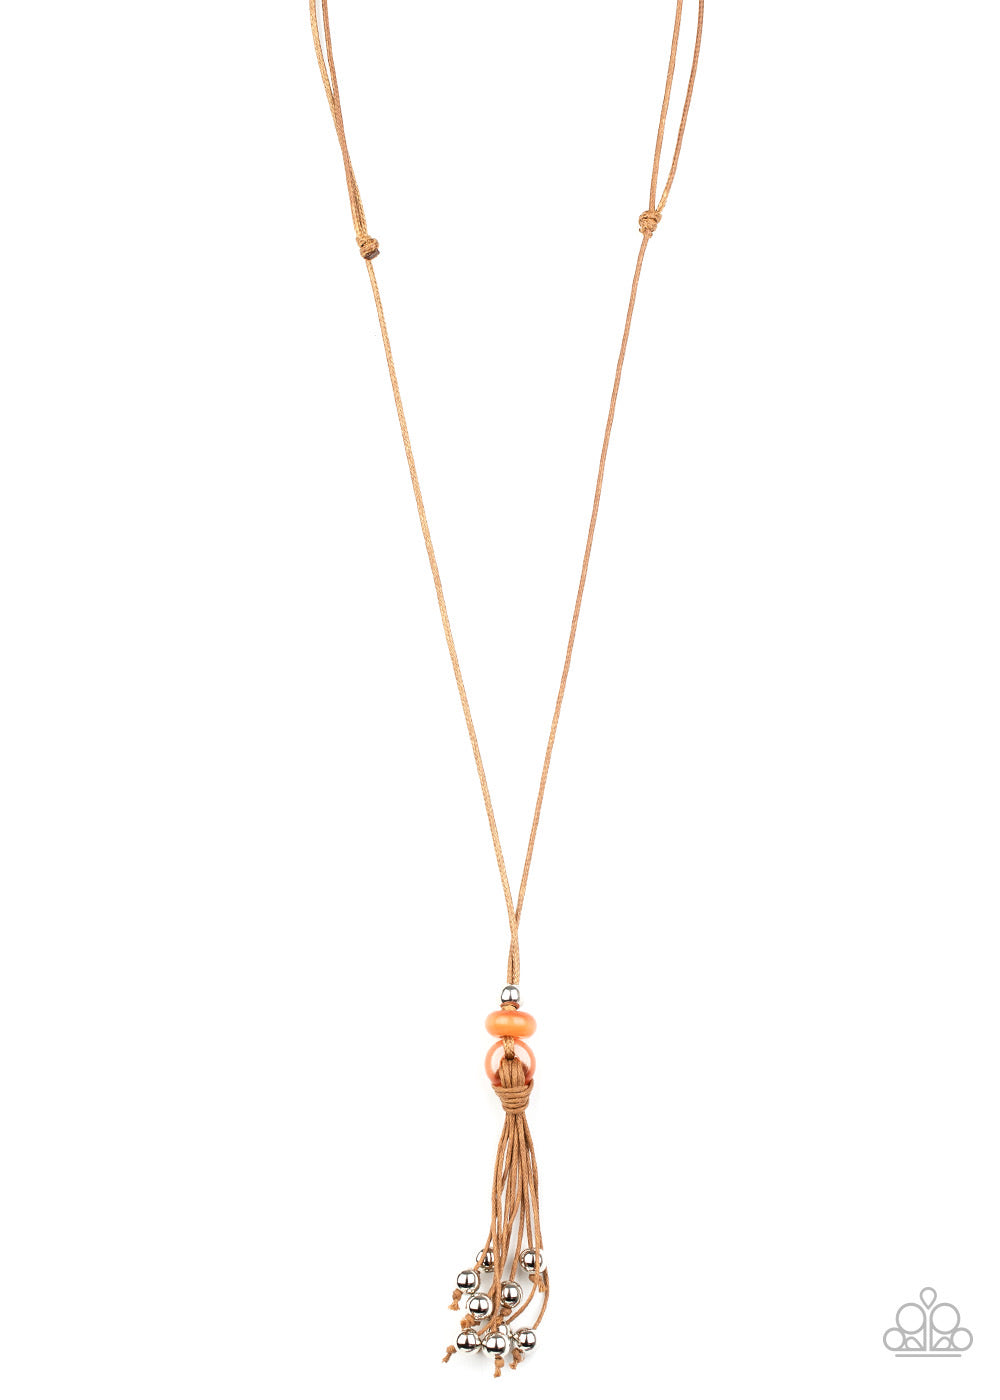 Ocean Child - Orange Urban Necklace - Paparazzi Accessories